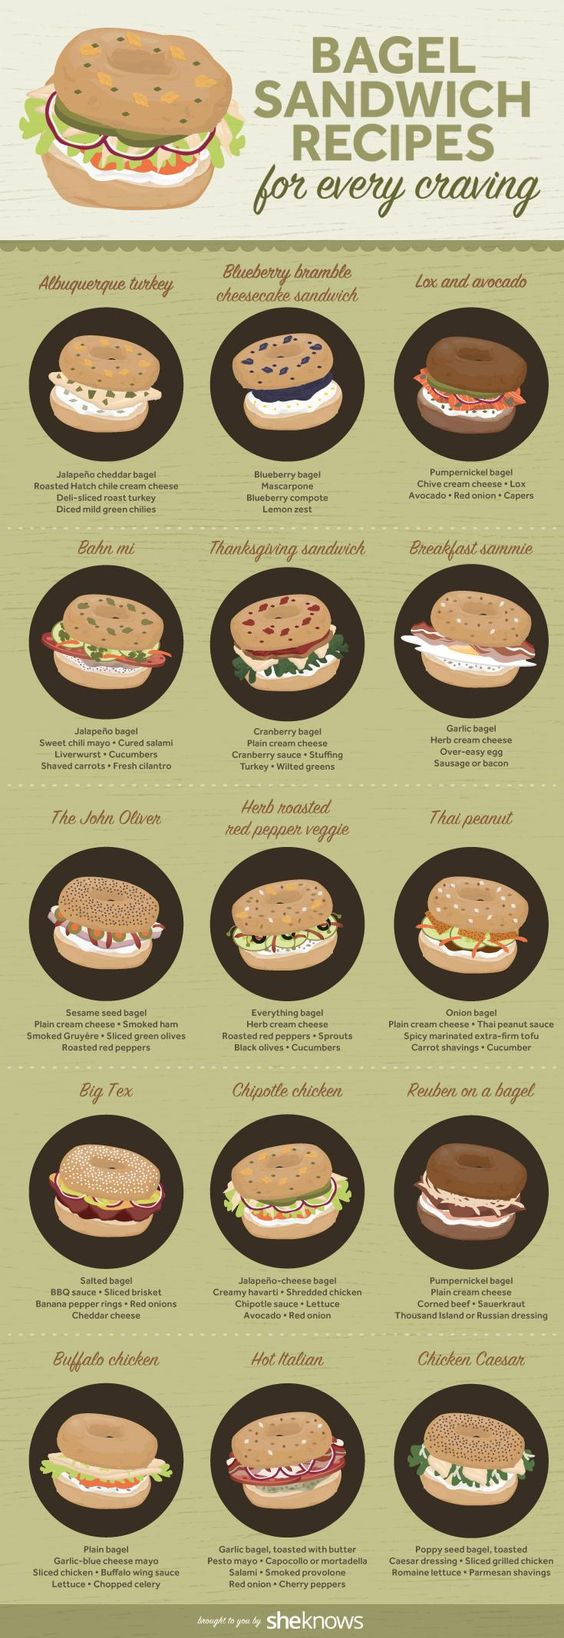 Bagel lovers, feast upon these yummy bagel sandwich ideas